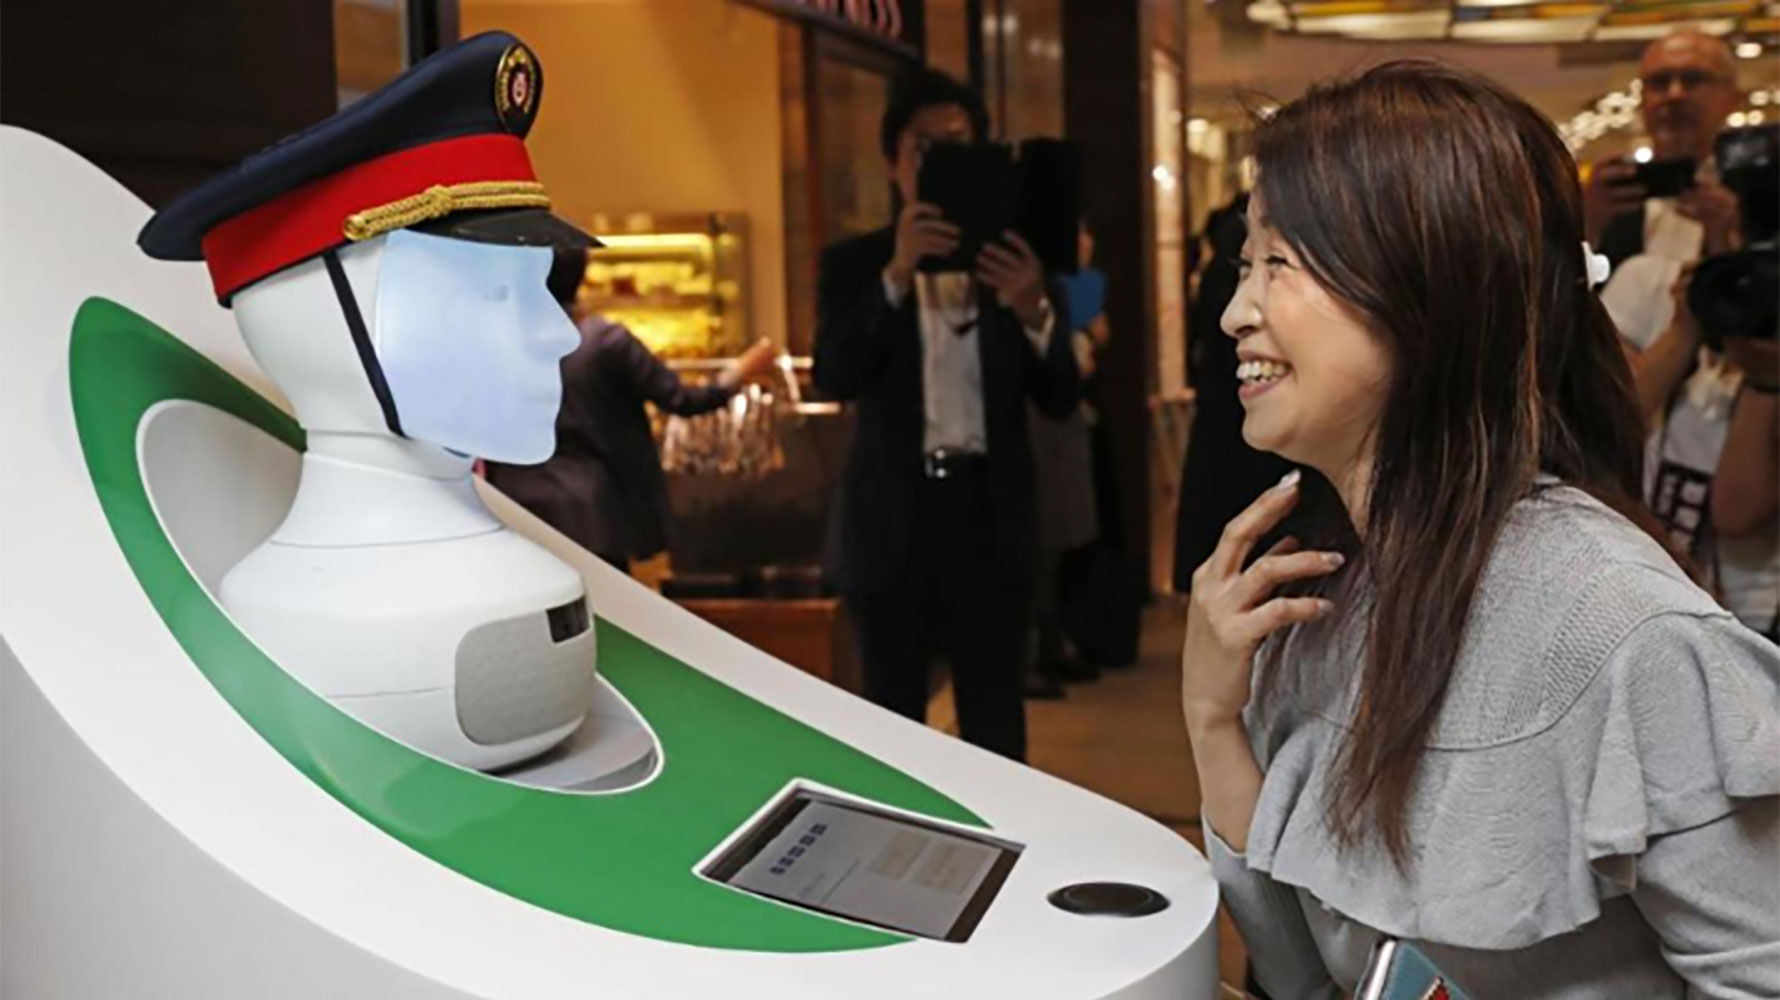 Robot concierge to assist millions of passengers in Germany and Japan